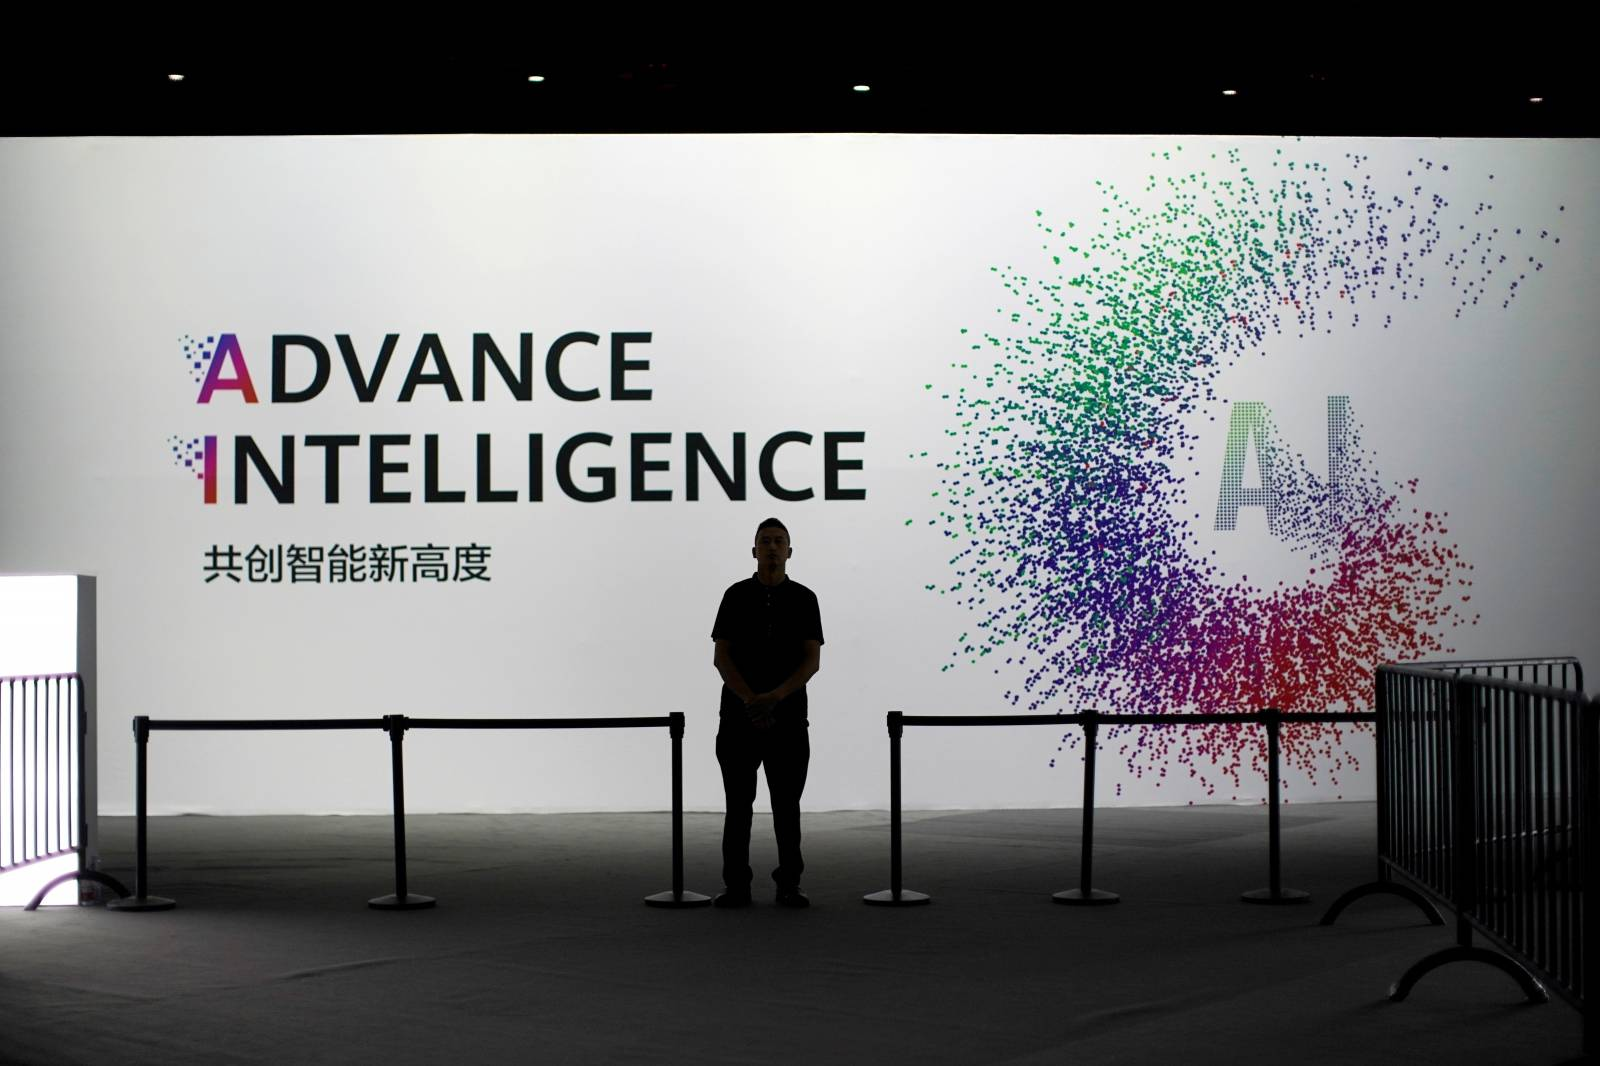 FILE PHOTO: A security officer keeps watch in front of an AI (Artificial Intelligence) sign at the annual Huawei Connect event in Shanghai